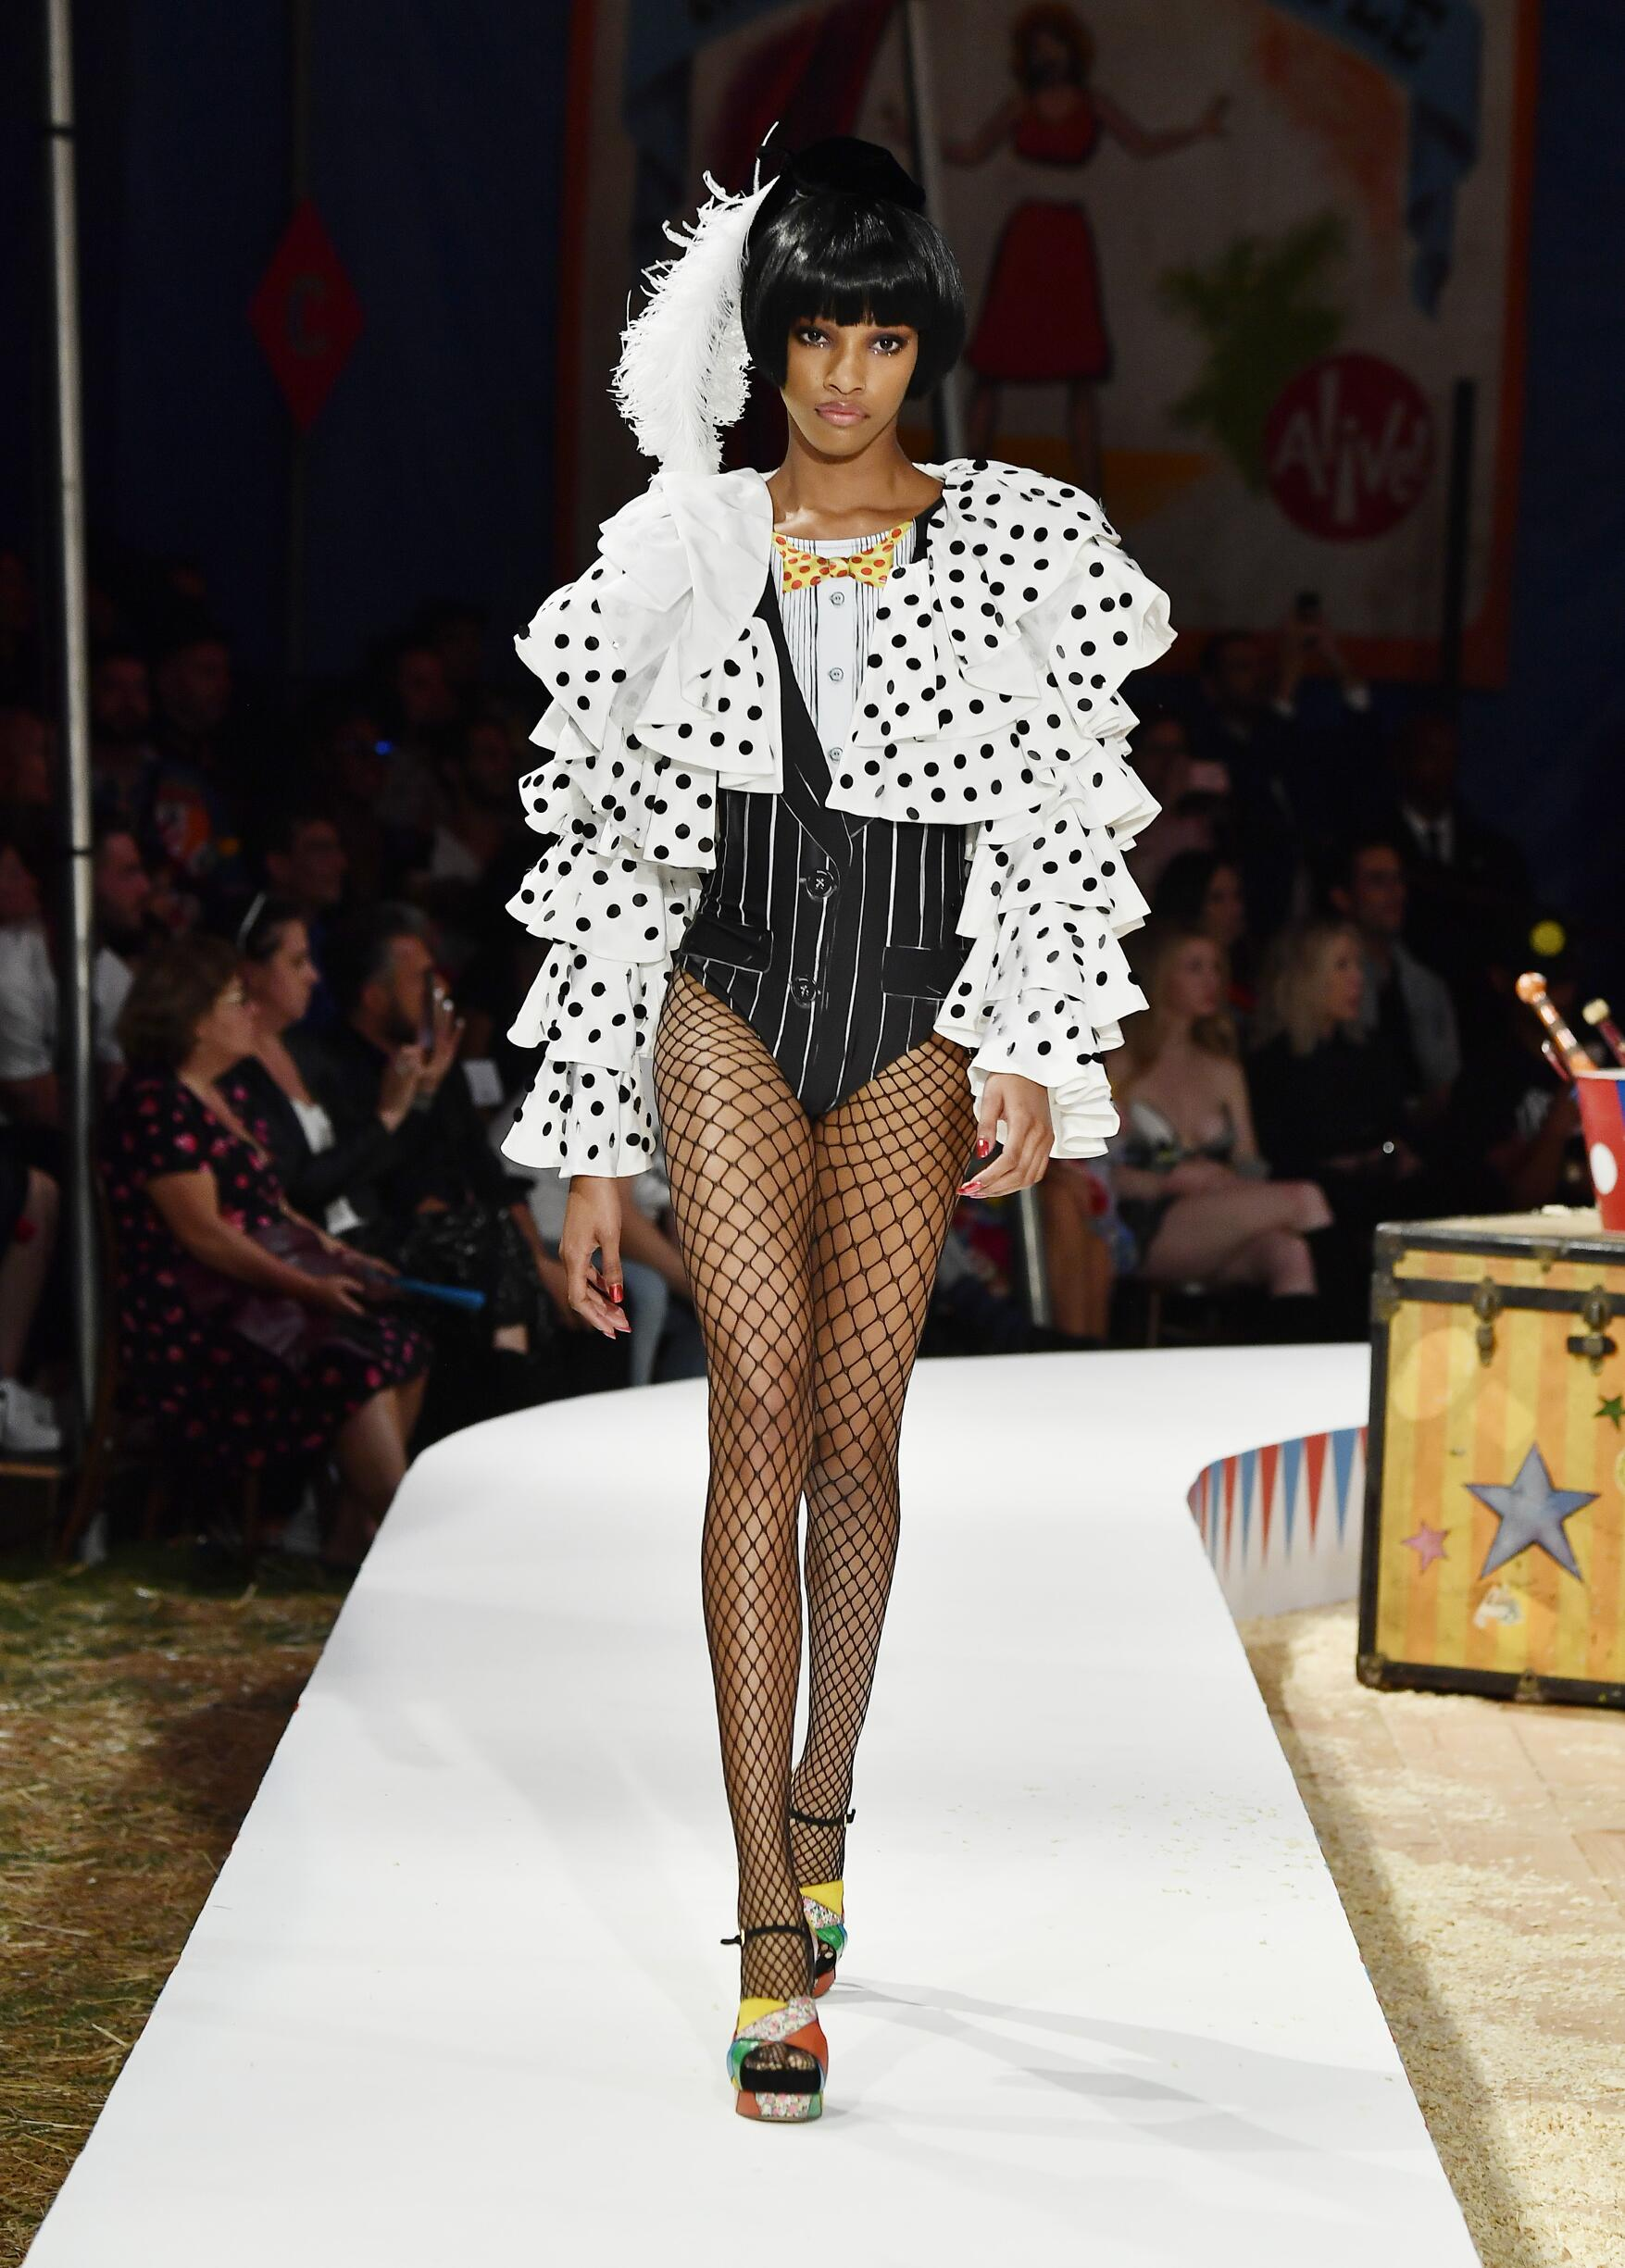 Moschino Spring Summer 2019 Menswear and Women's Resort Collection Look 14 Los Angeles